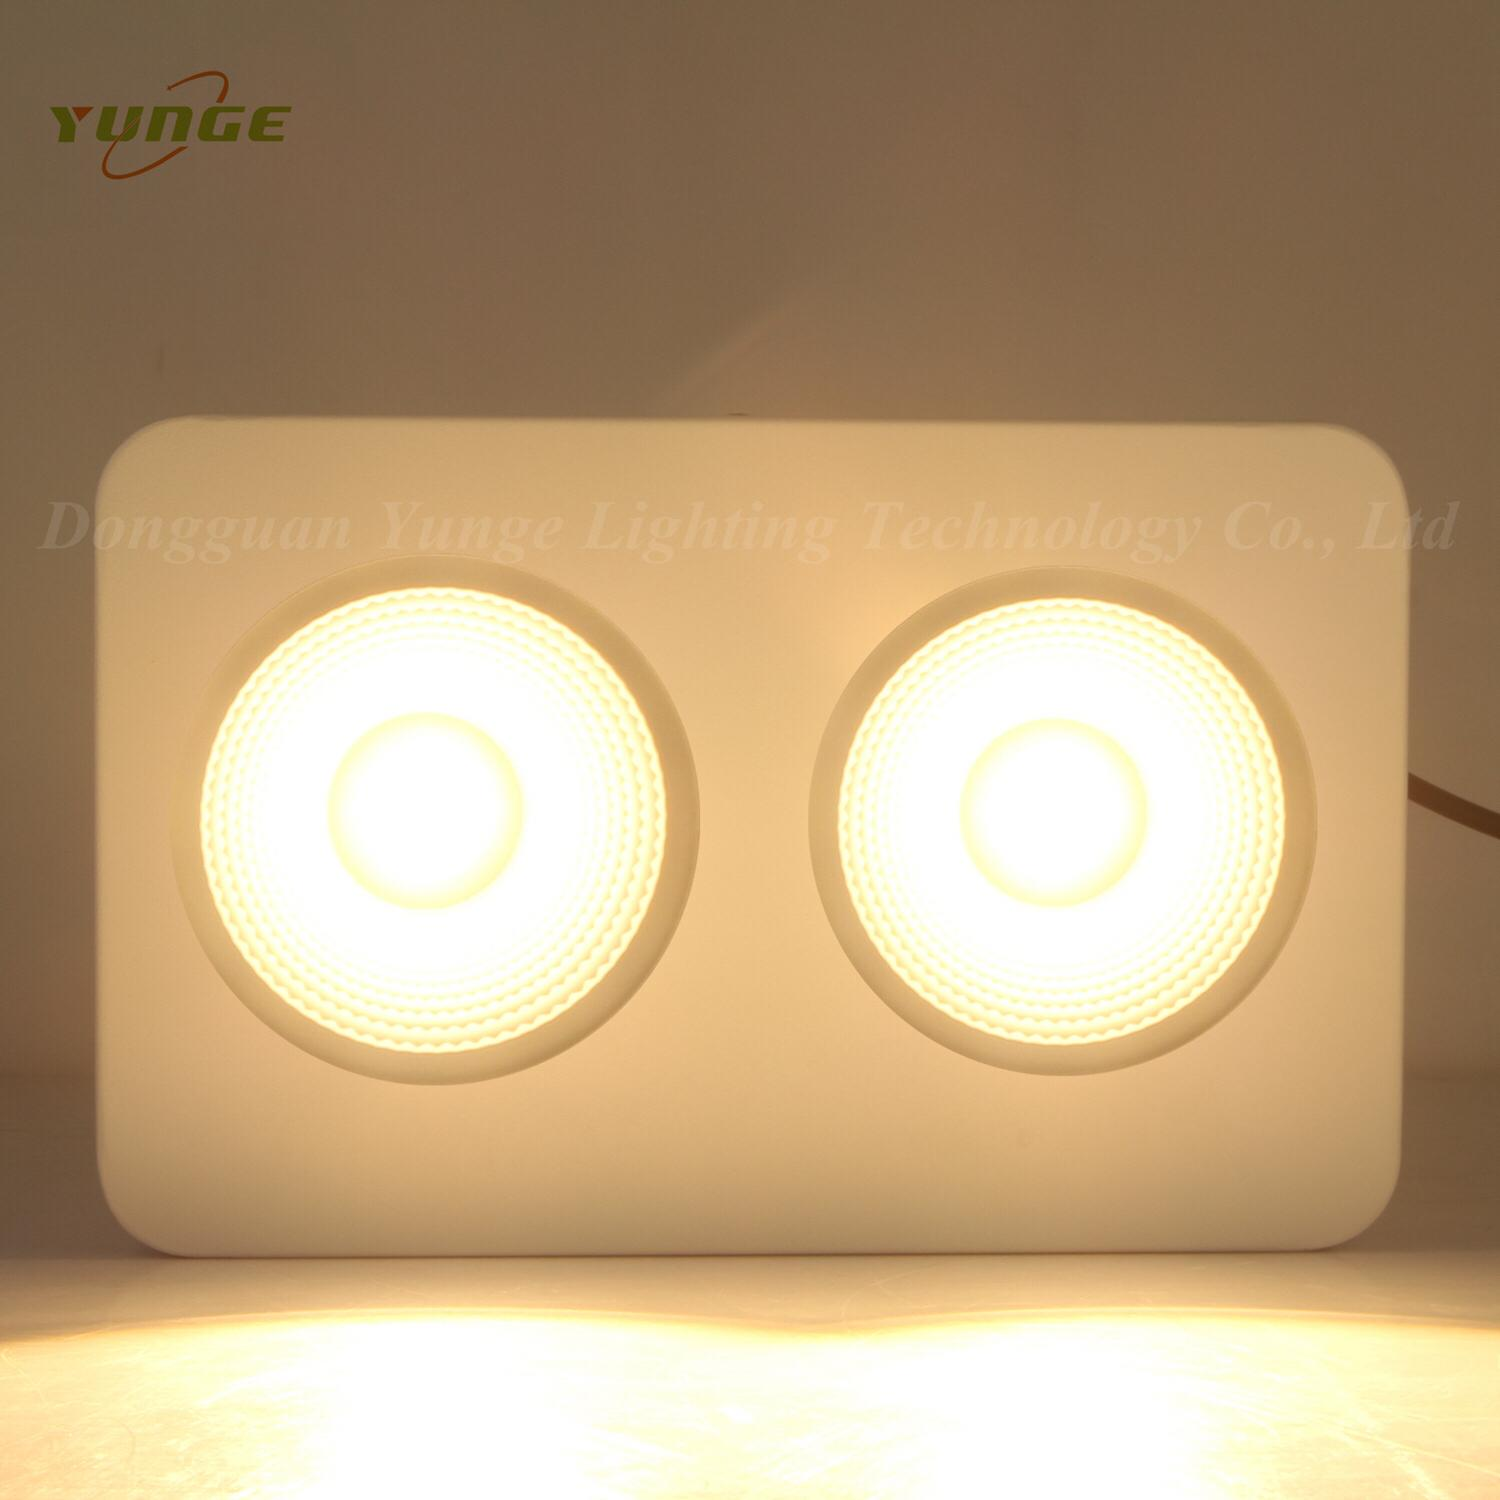 400W COB LED plant grow light,High quality CREE chip,high Lumious flux lamp. 7